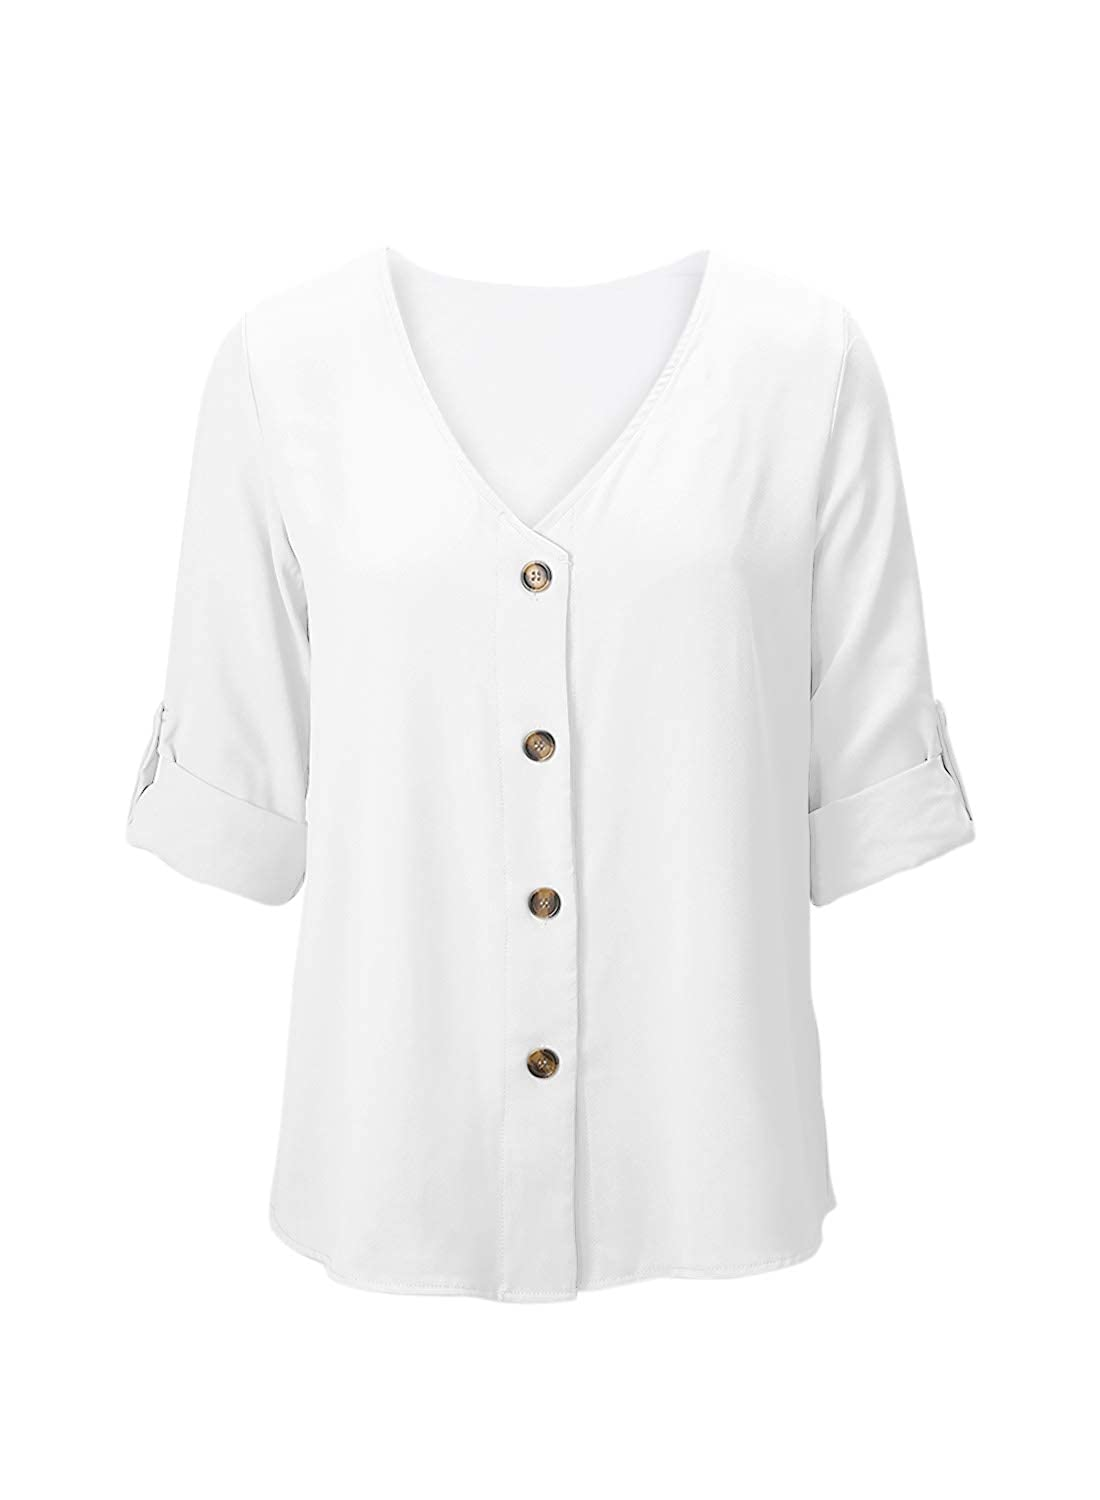 Aleumdr Women Collared Tunics Shirts Roll-up Sleeve Button Down Casual Blouse Top with Pockets S-XXL